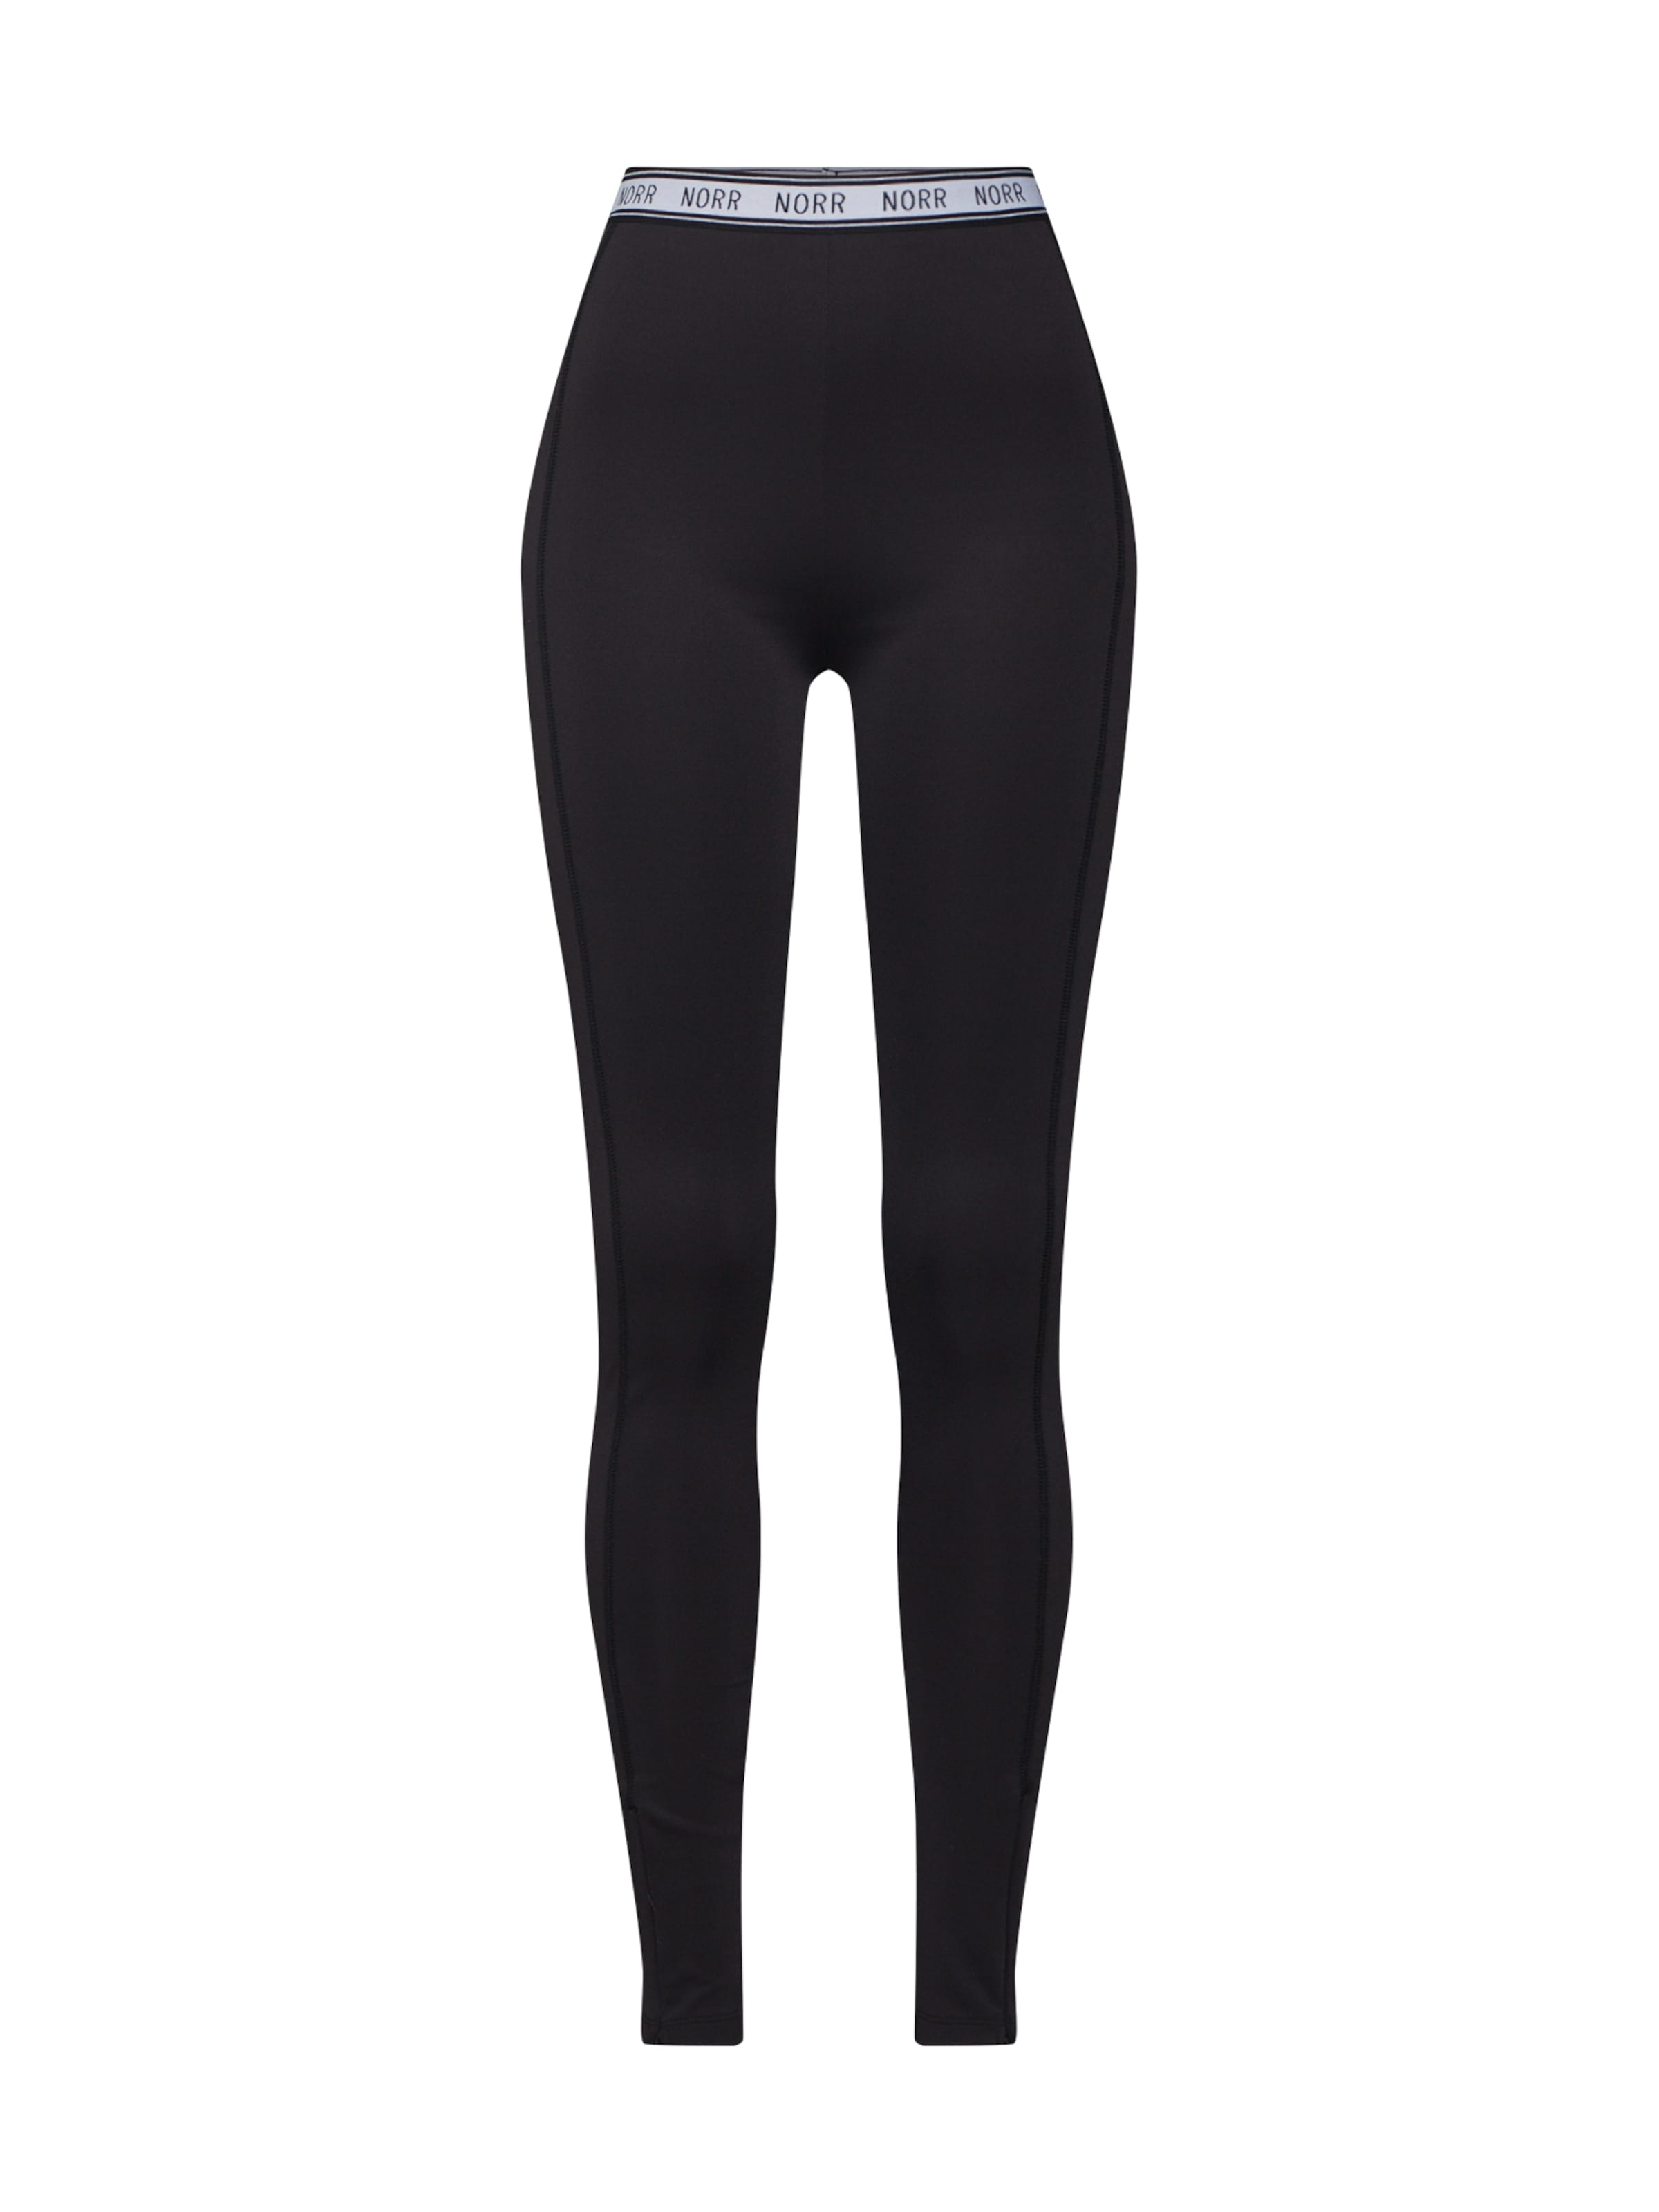 Norr En En Leggings 'ashley' Noir Norr 'ashley' Noir Leggings 'ashley' En Norr Leggings WCrxedBo